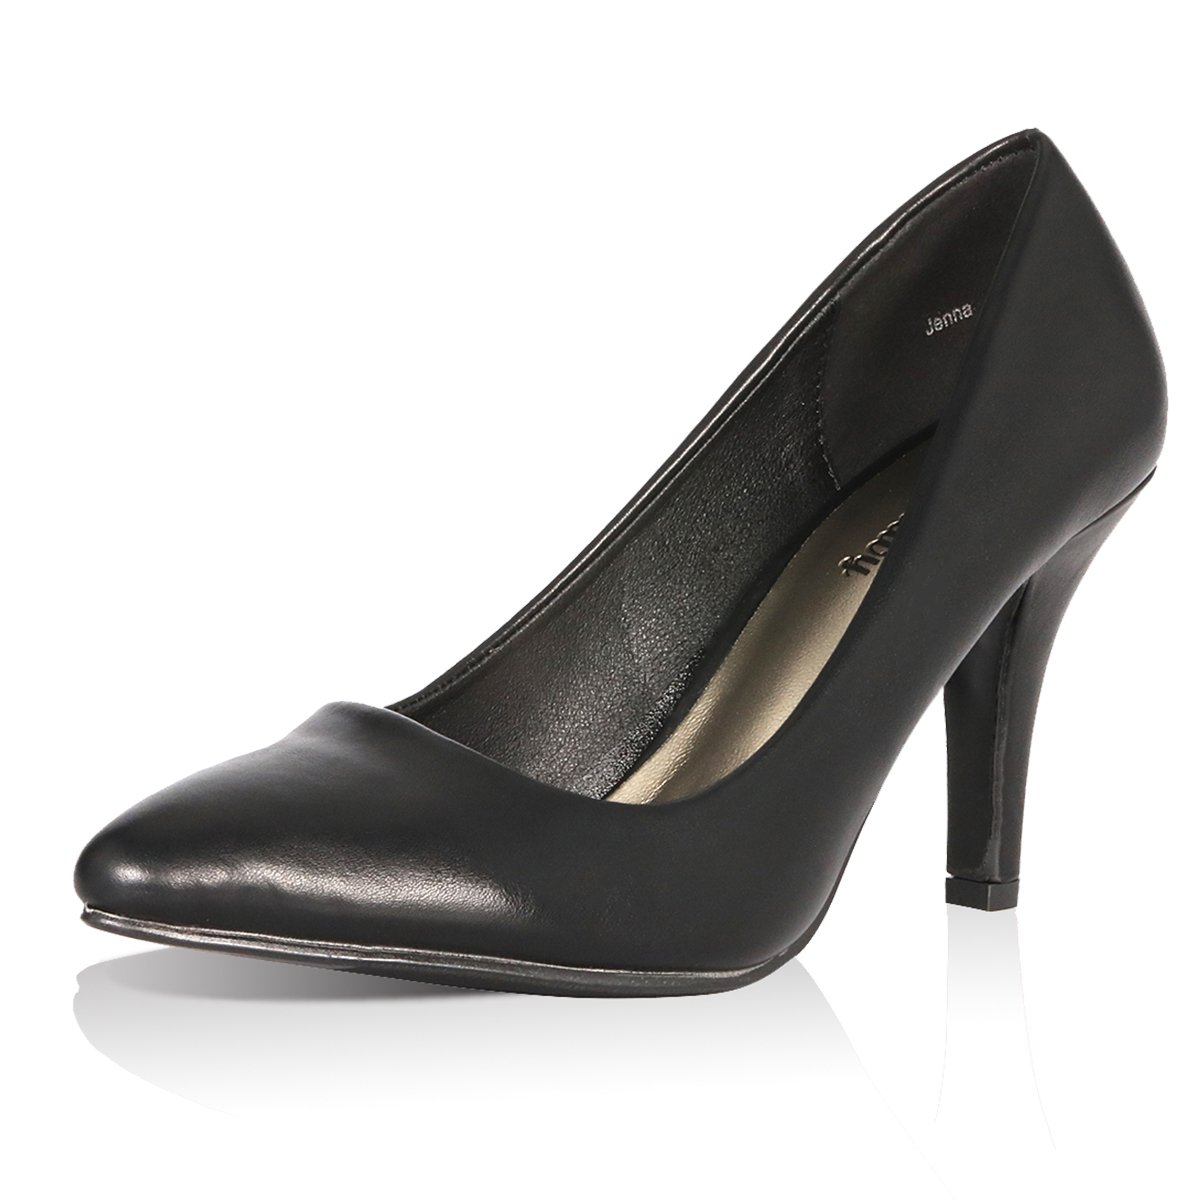 Yeviavy Women's Pumps Shoes High Heel Pointed Toe Dress Fashion Shoes Black/Pewter PU 8.5 by Yeviavy (Image #4)